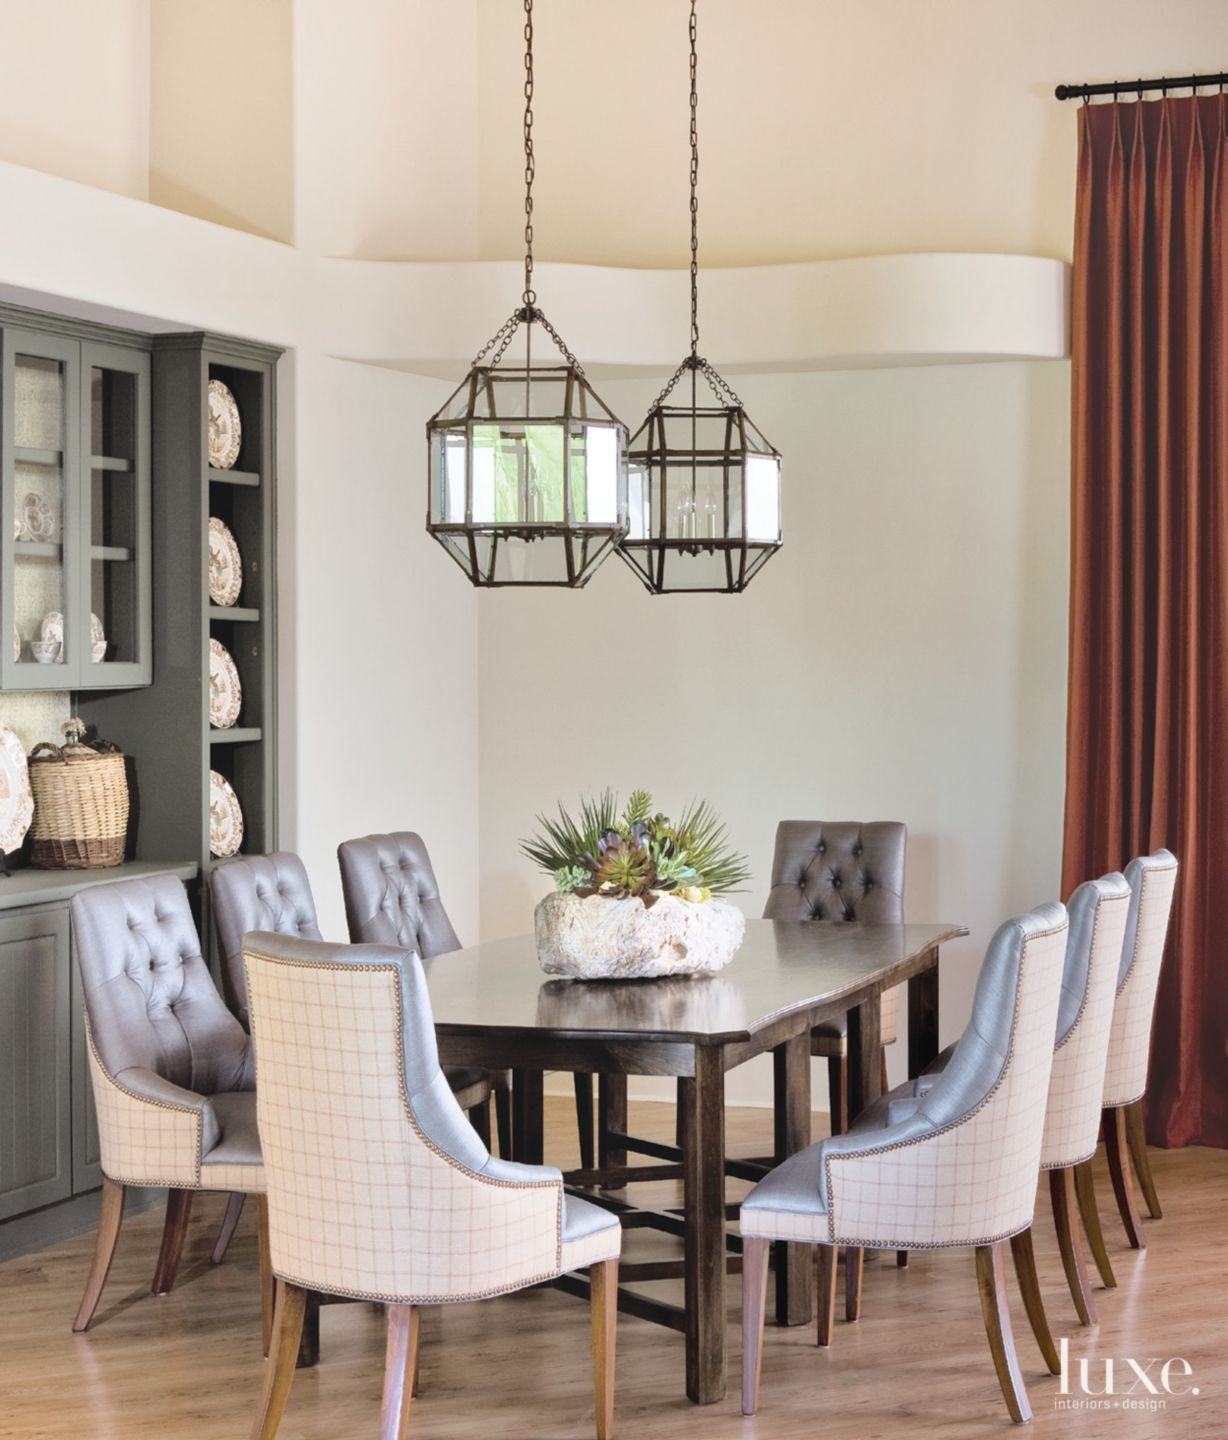 Country Cream Dining Room with Built-in Cabinets